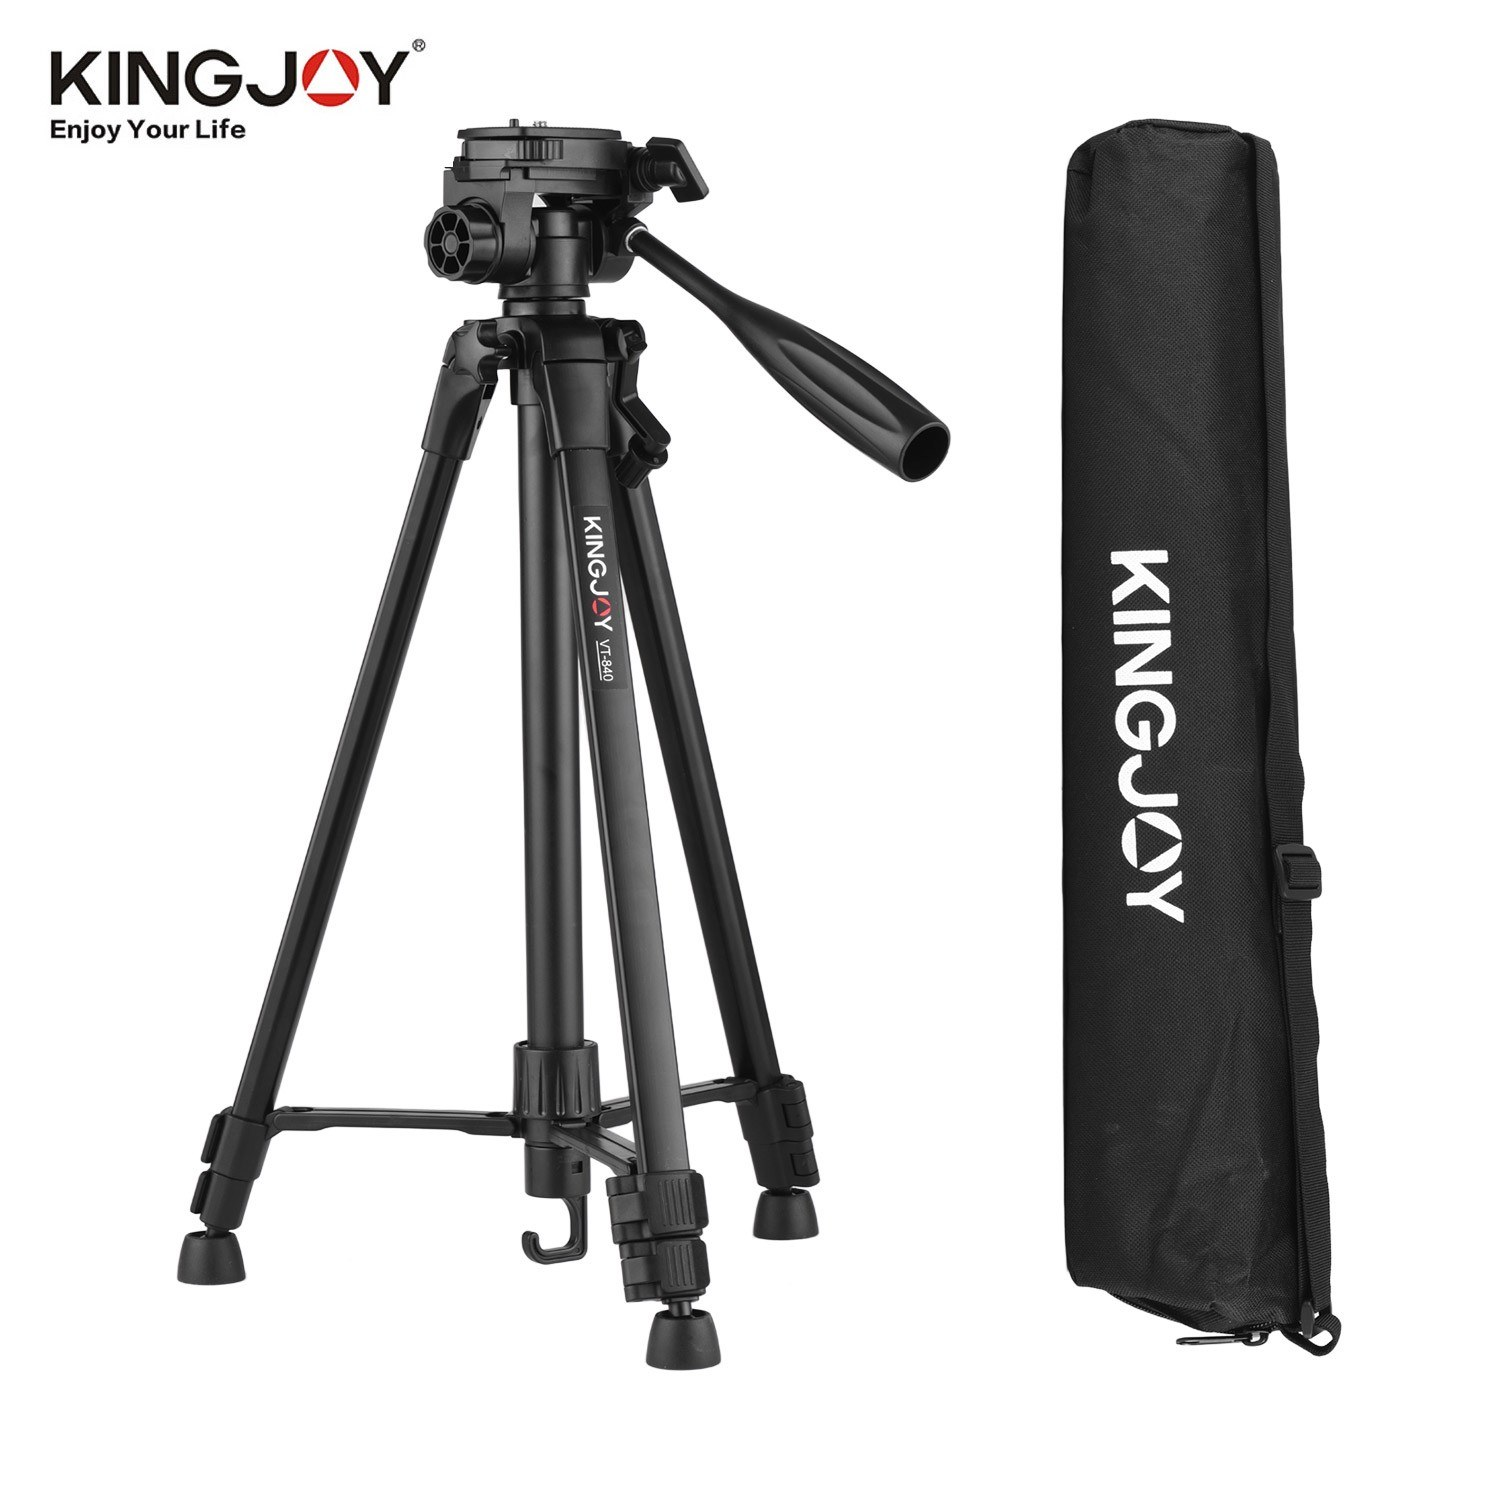 KINGJOY VT-840 Portable Photography Tripod Stand Aluminum Alloy 2kg/4.4lbs Load Capacity Max. Height 140.5cm with Quick Release Plate Middle Axis Carry Bag Black